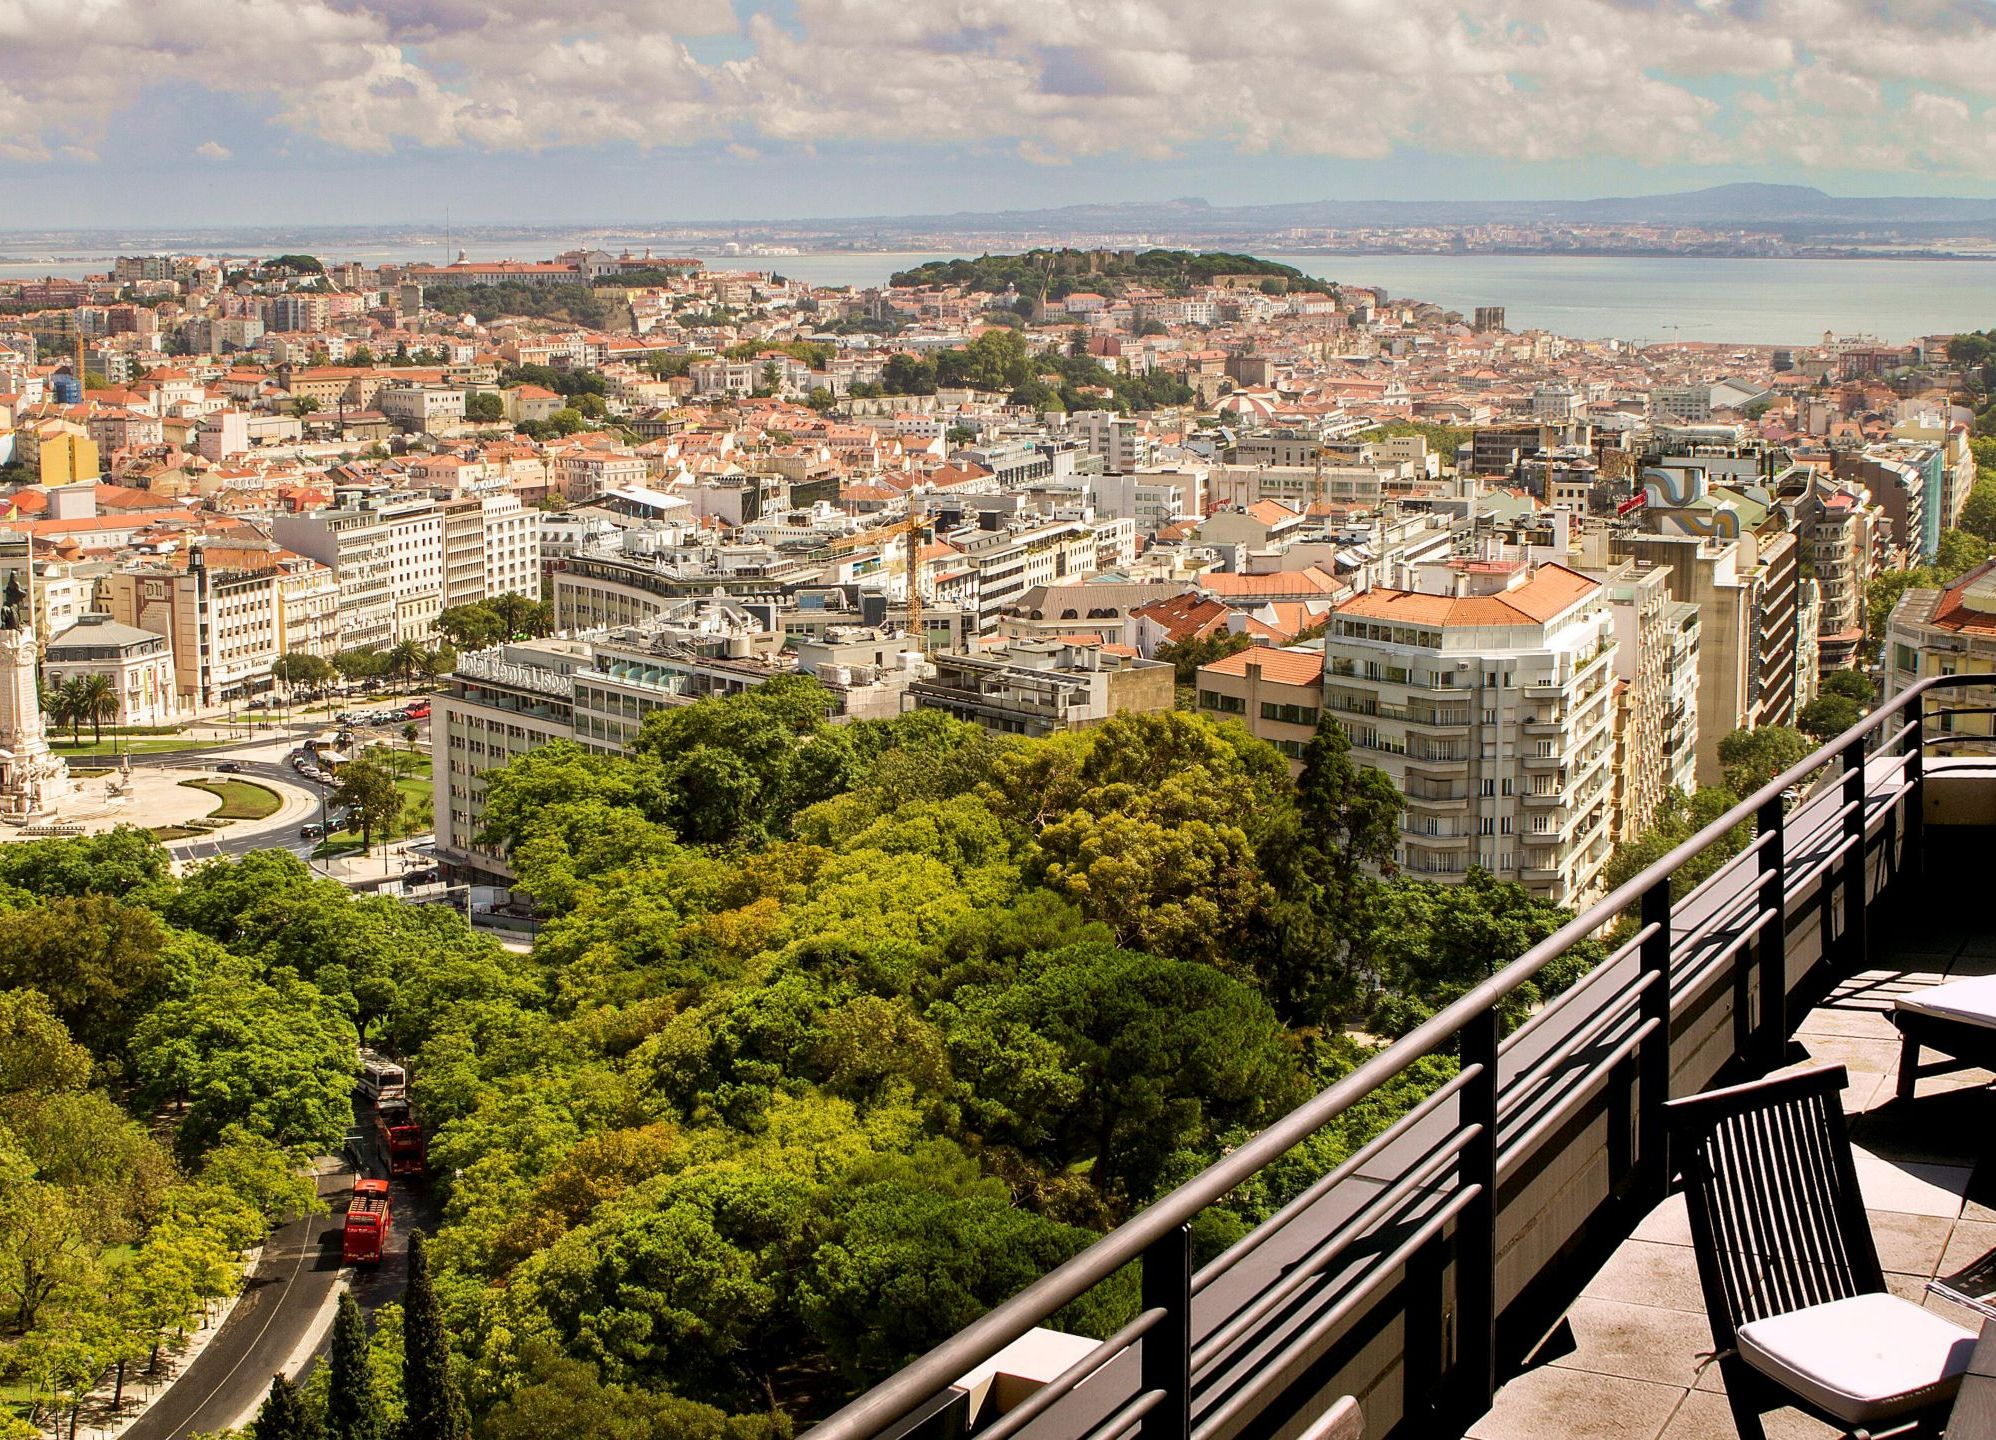 intercontinental-lisbon-3052959375-2x1